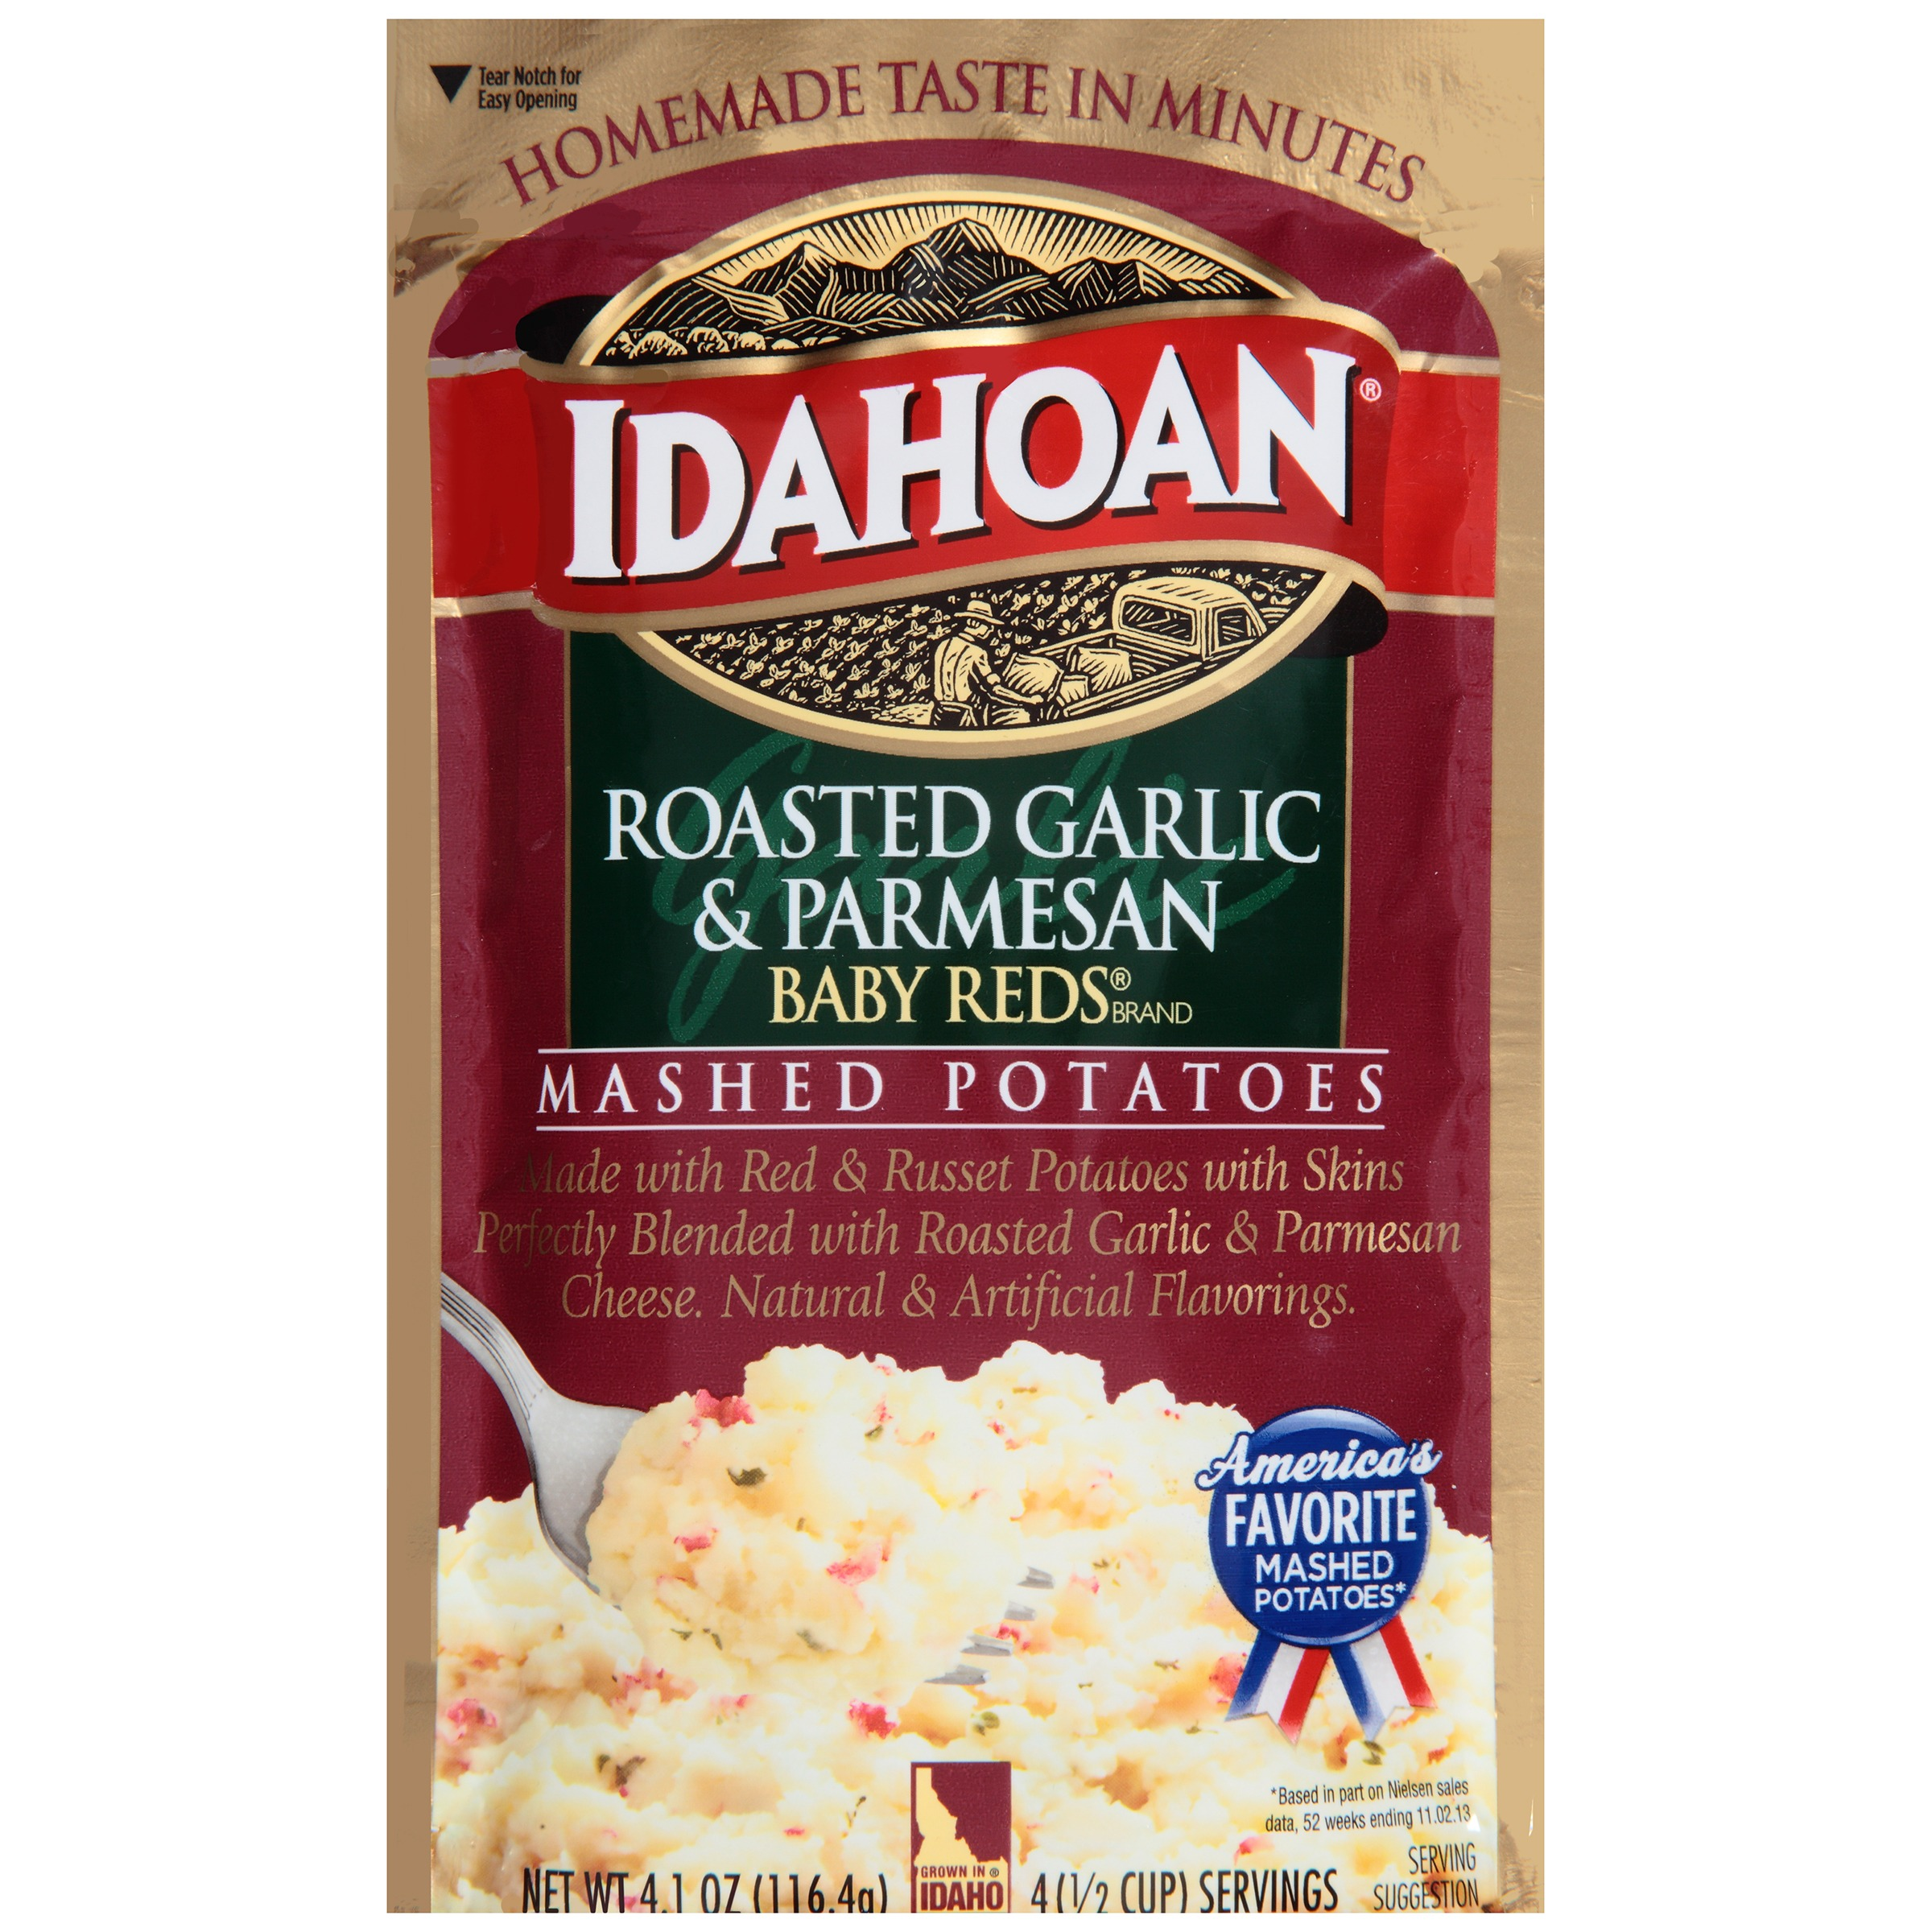 Idahoan Baby Reds Brand Roasted Garlic & Parmesan Mashed Potatoes 4.1 oz. Pouch by Idahoan Foods, LLC